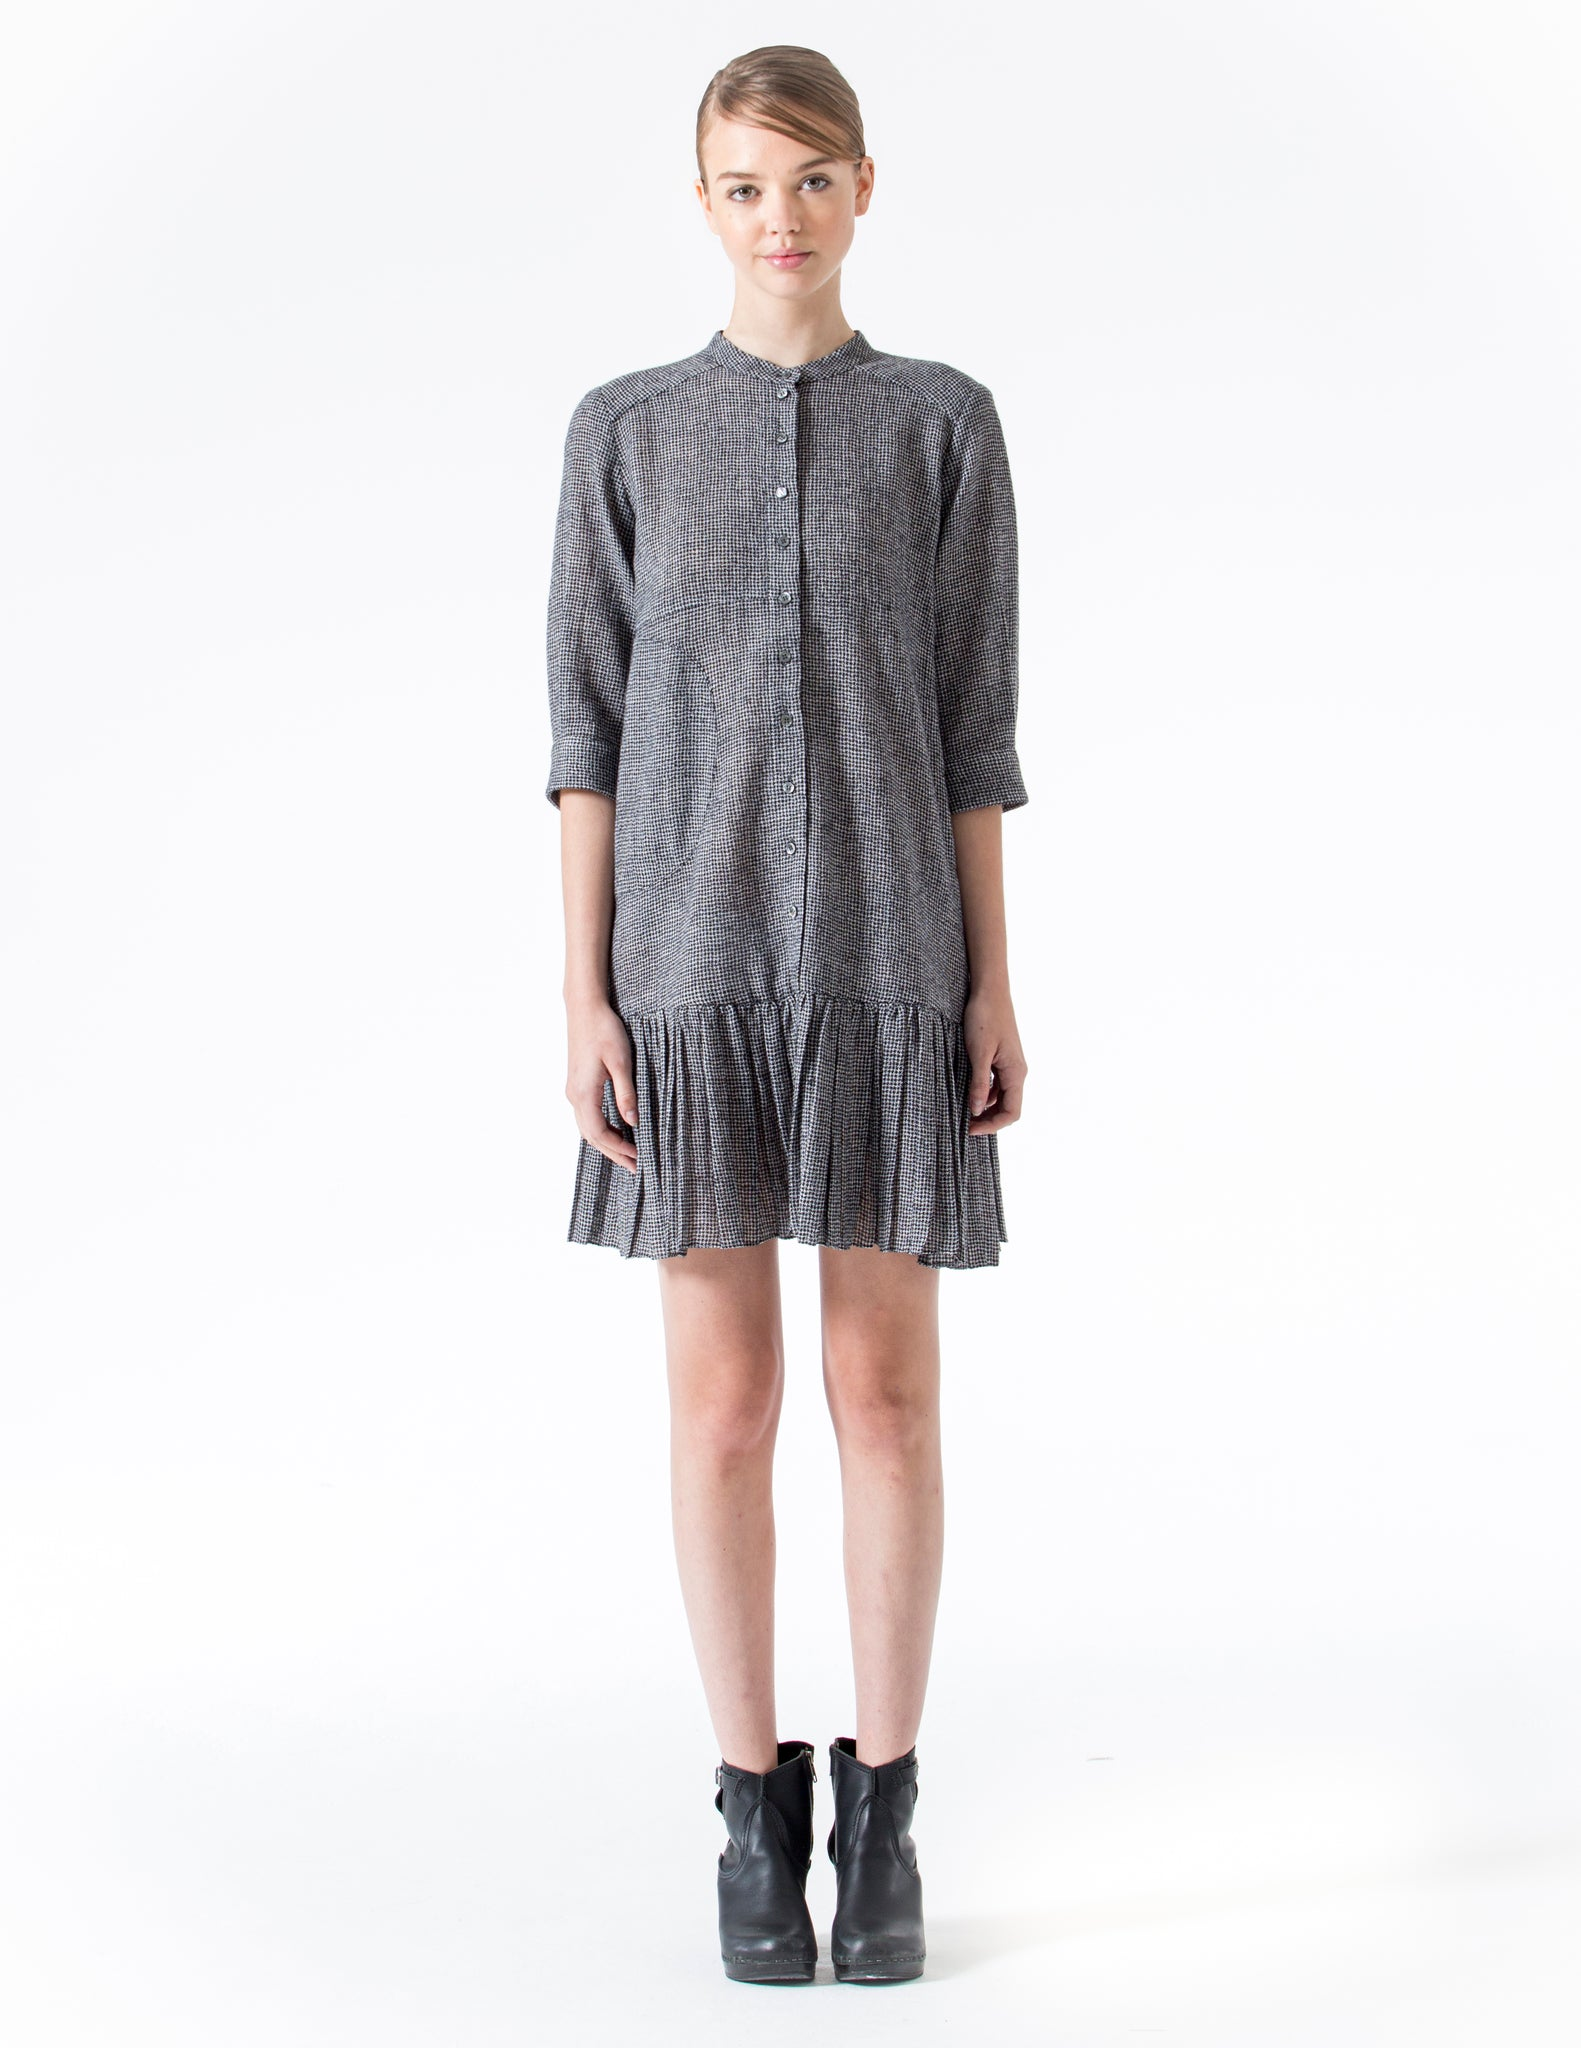 short dress with 3/4 length cuffed sleeves and ruffled hem. front button closure. made in new york city.